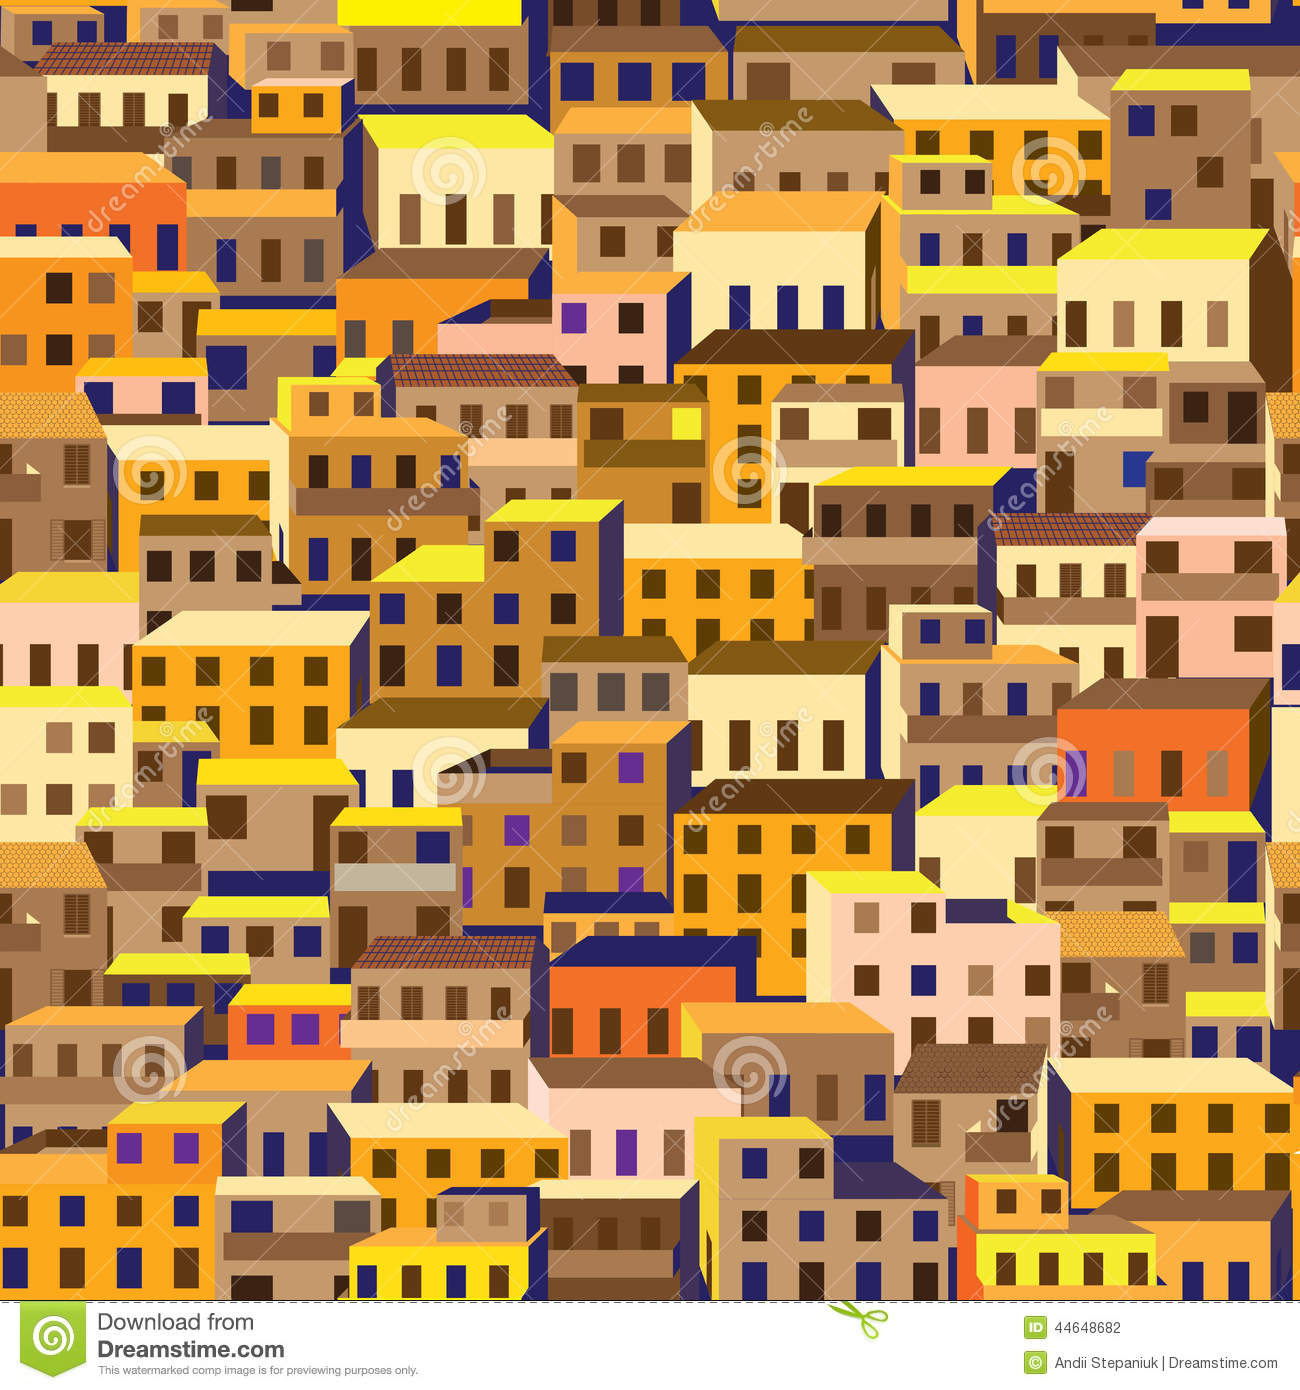 Favela Stock Illustrations.